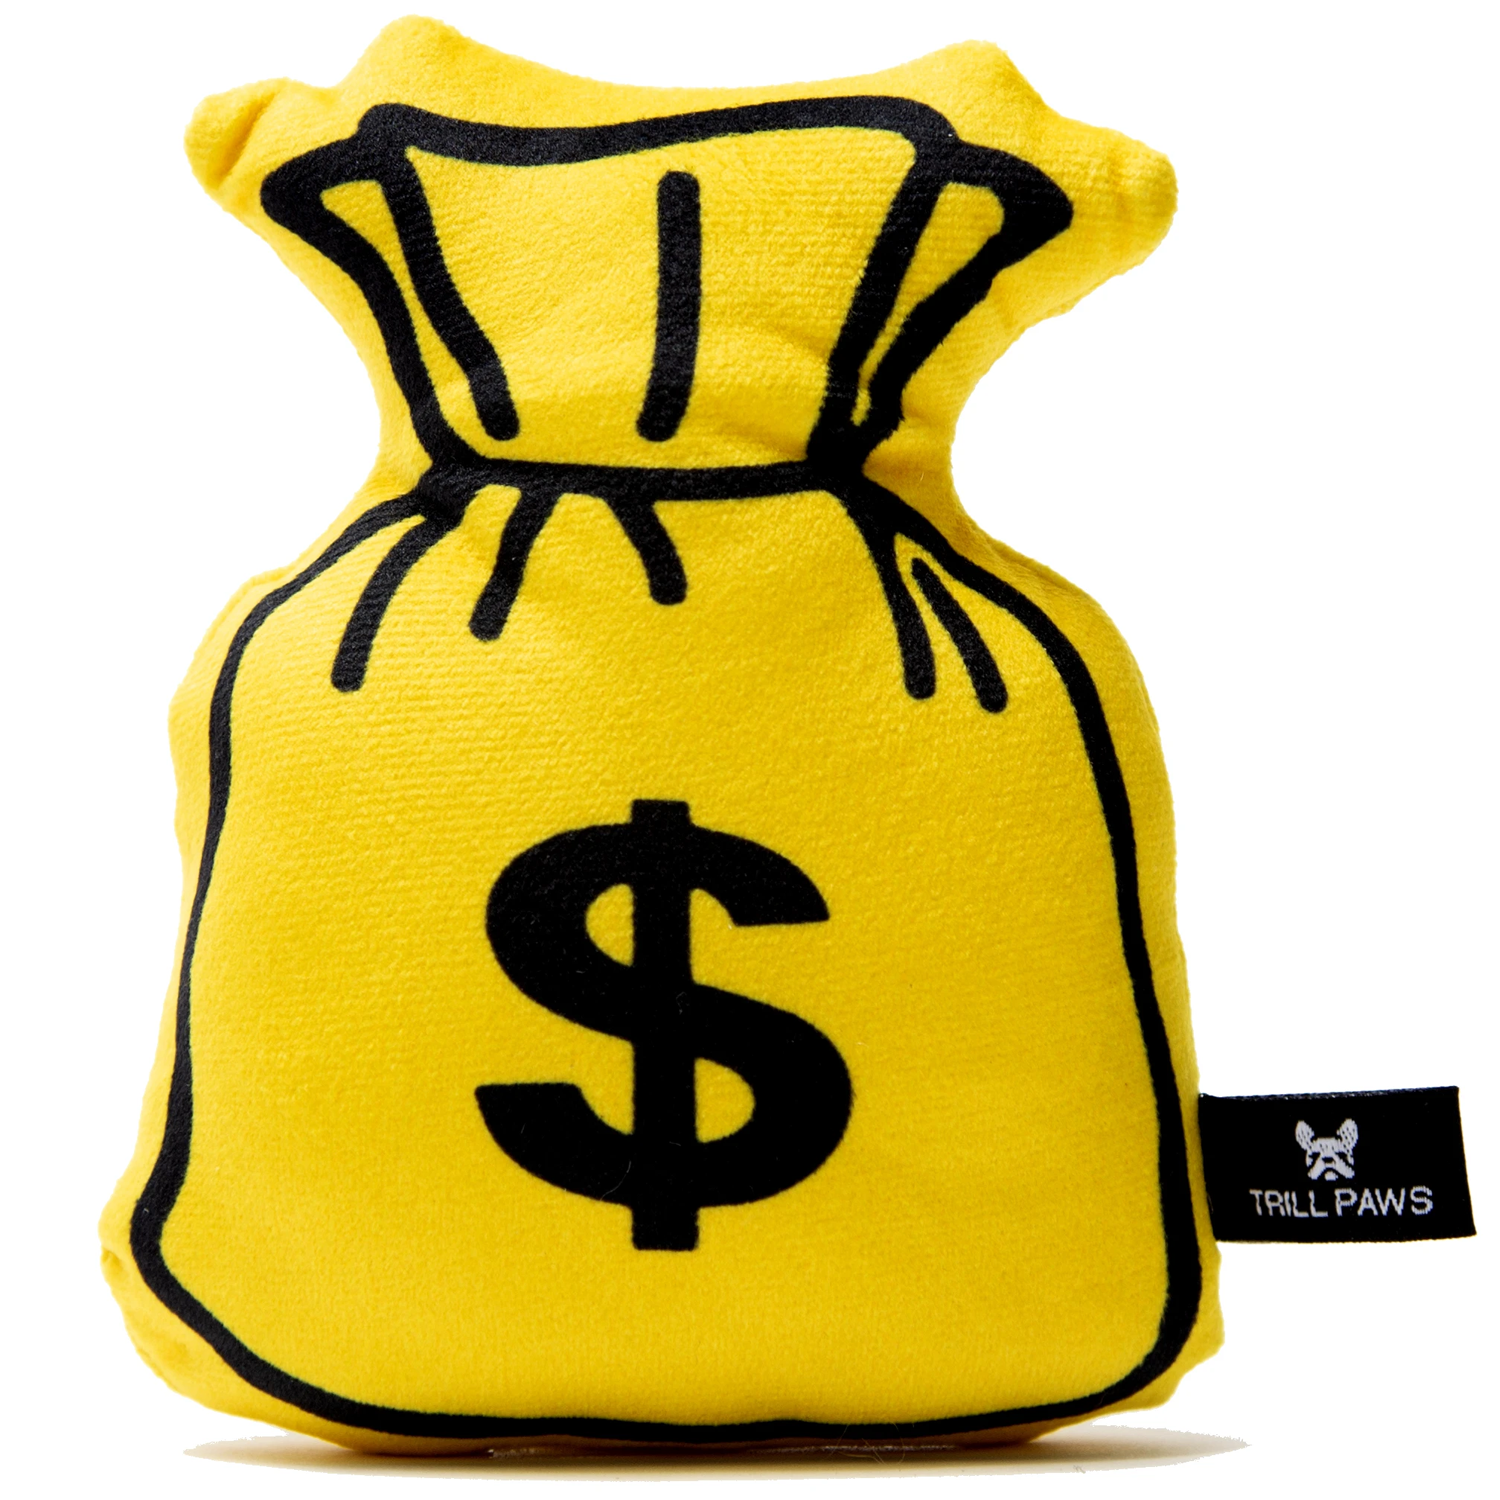 Money Bag Dog Toy